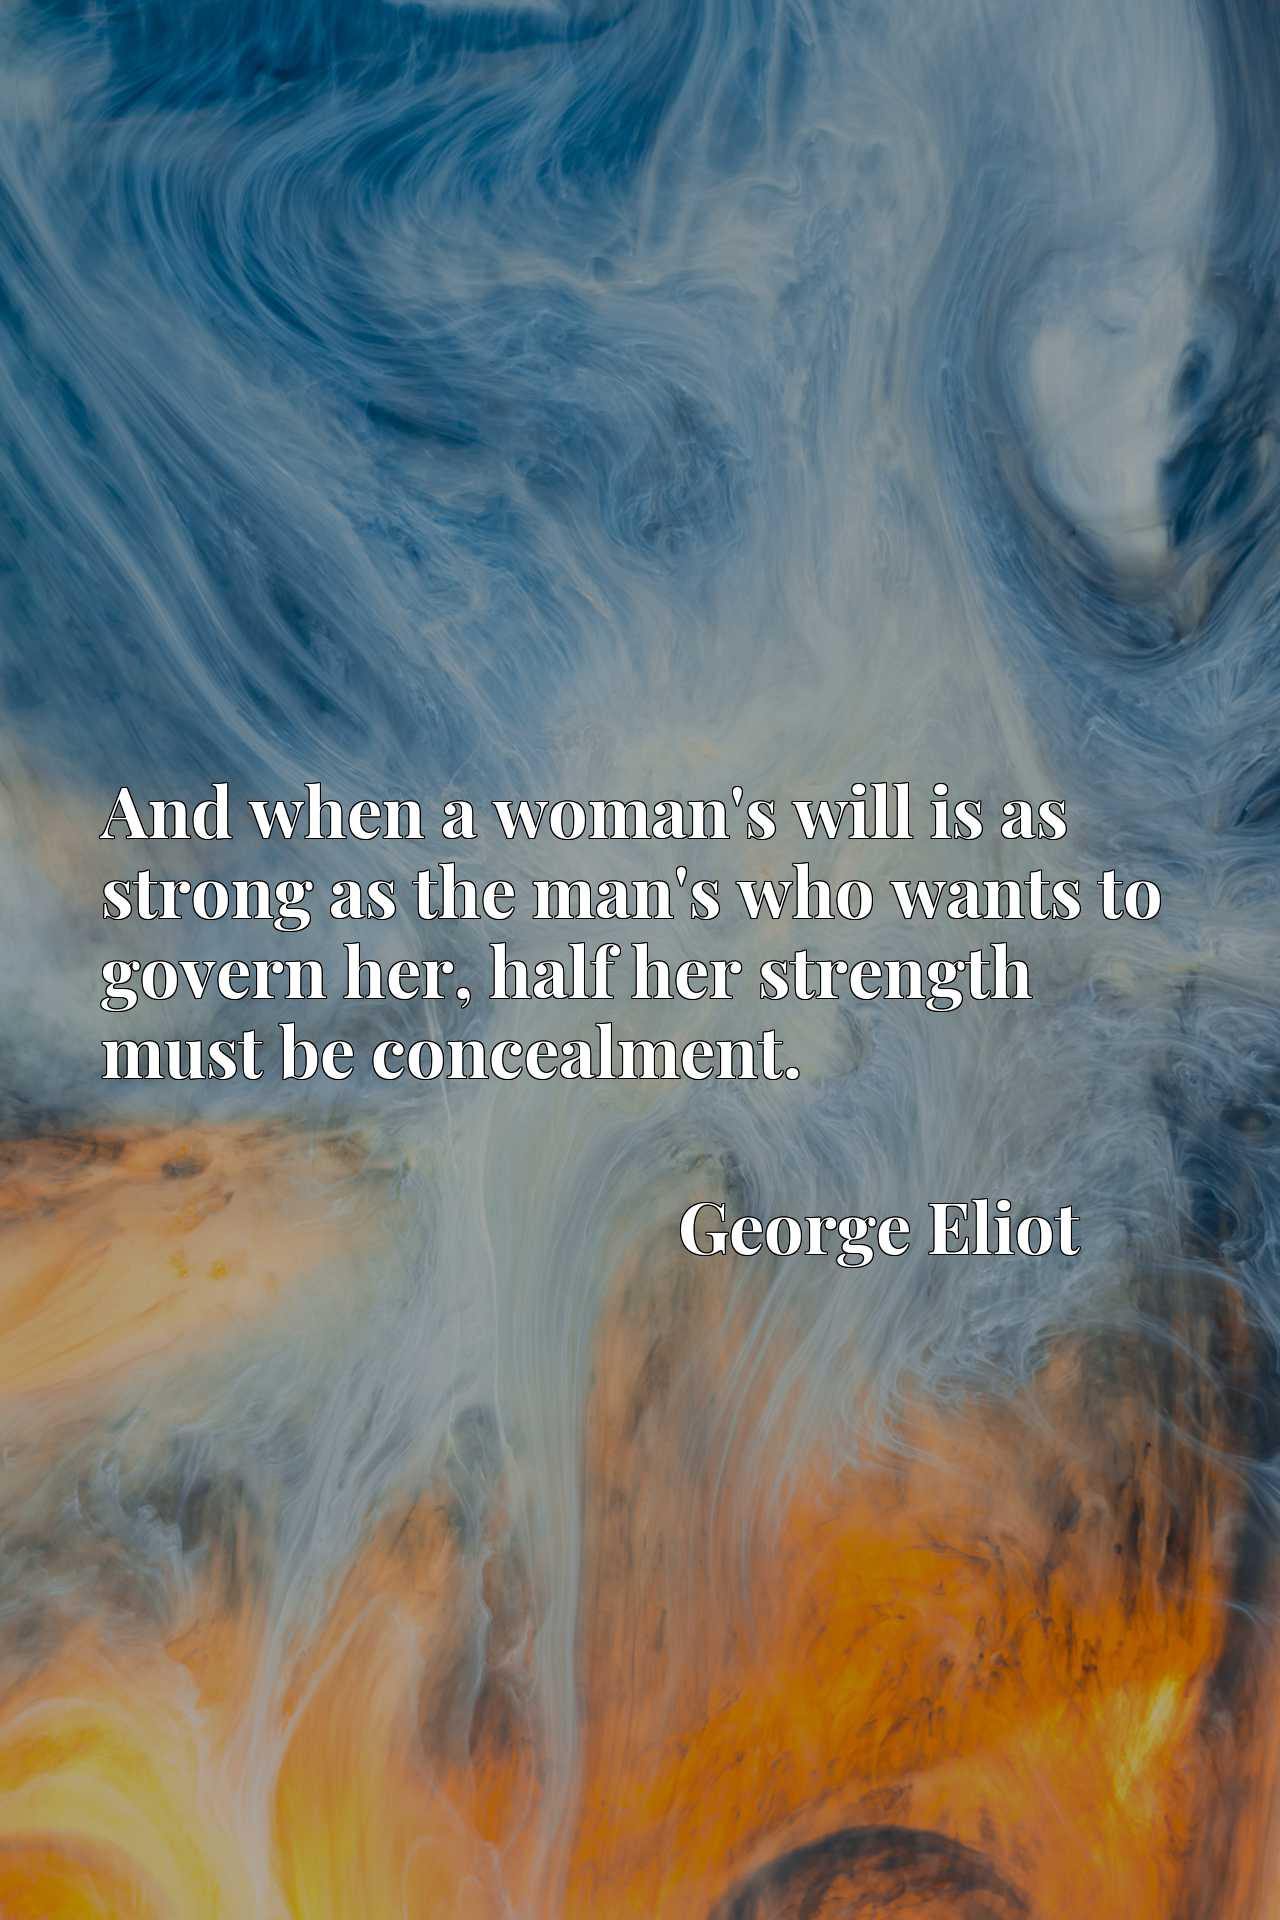 Quote Picture :And when a woman's will is as strong as the man's who wants to govern her, half her strength must be concealment.